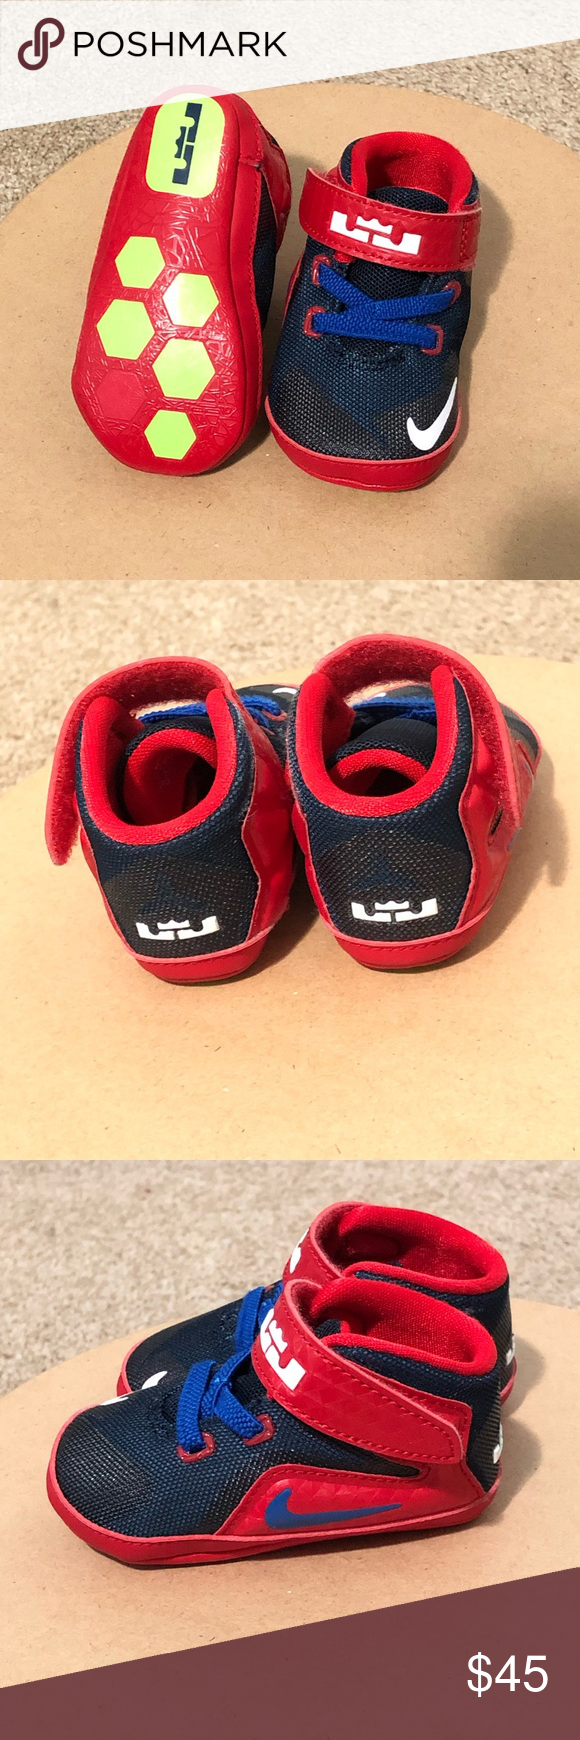 50e16d2d251e1 Infant Nike Lebron s XII Infant Nike Lebron tennis shoes barely worn. Size  3. Have Box! Nike Shoes Baby   Walker